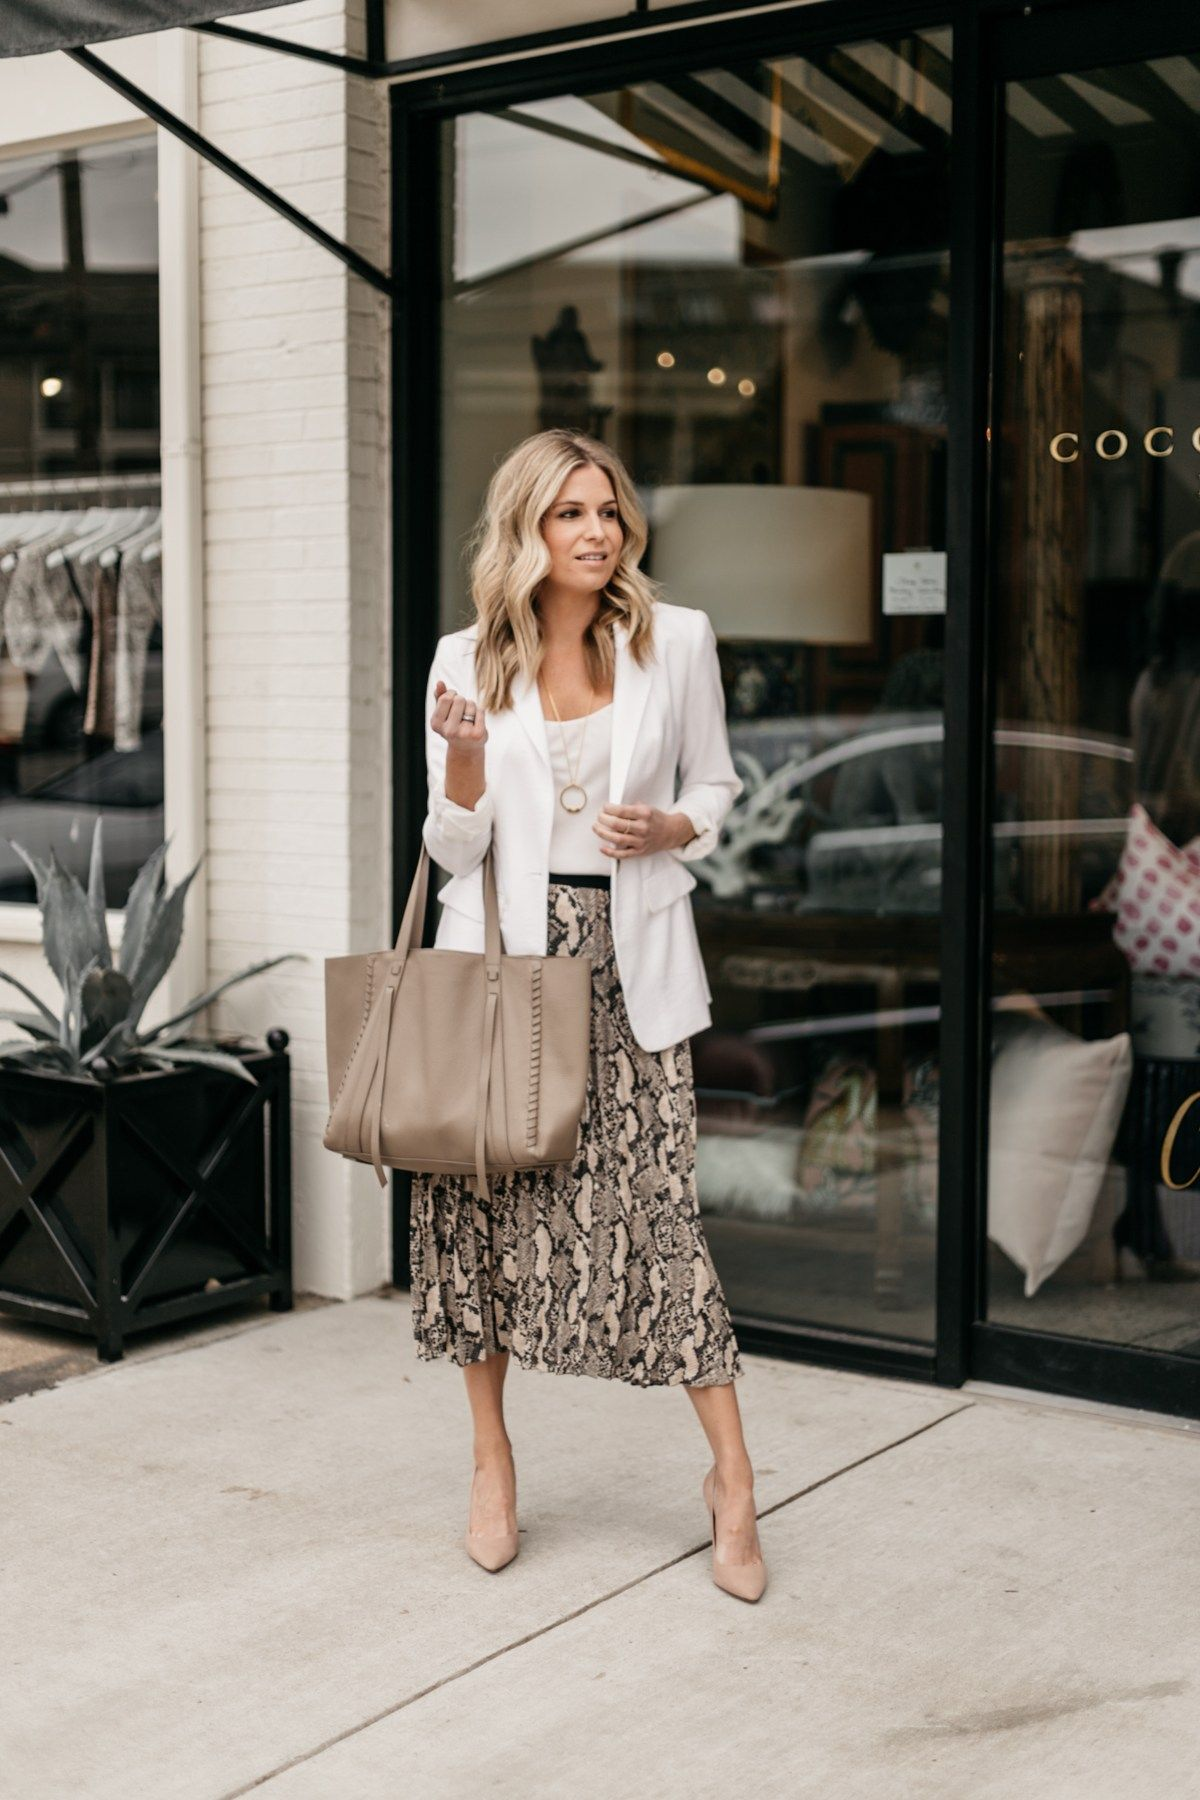 Sharing Ways To Wear Animal Print For Work On Onesmallblonde Com My Favorite Way Is To Pair It Wi Printed Skirt Outfit Work Outfits Women White Blazer Outfits